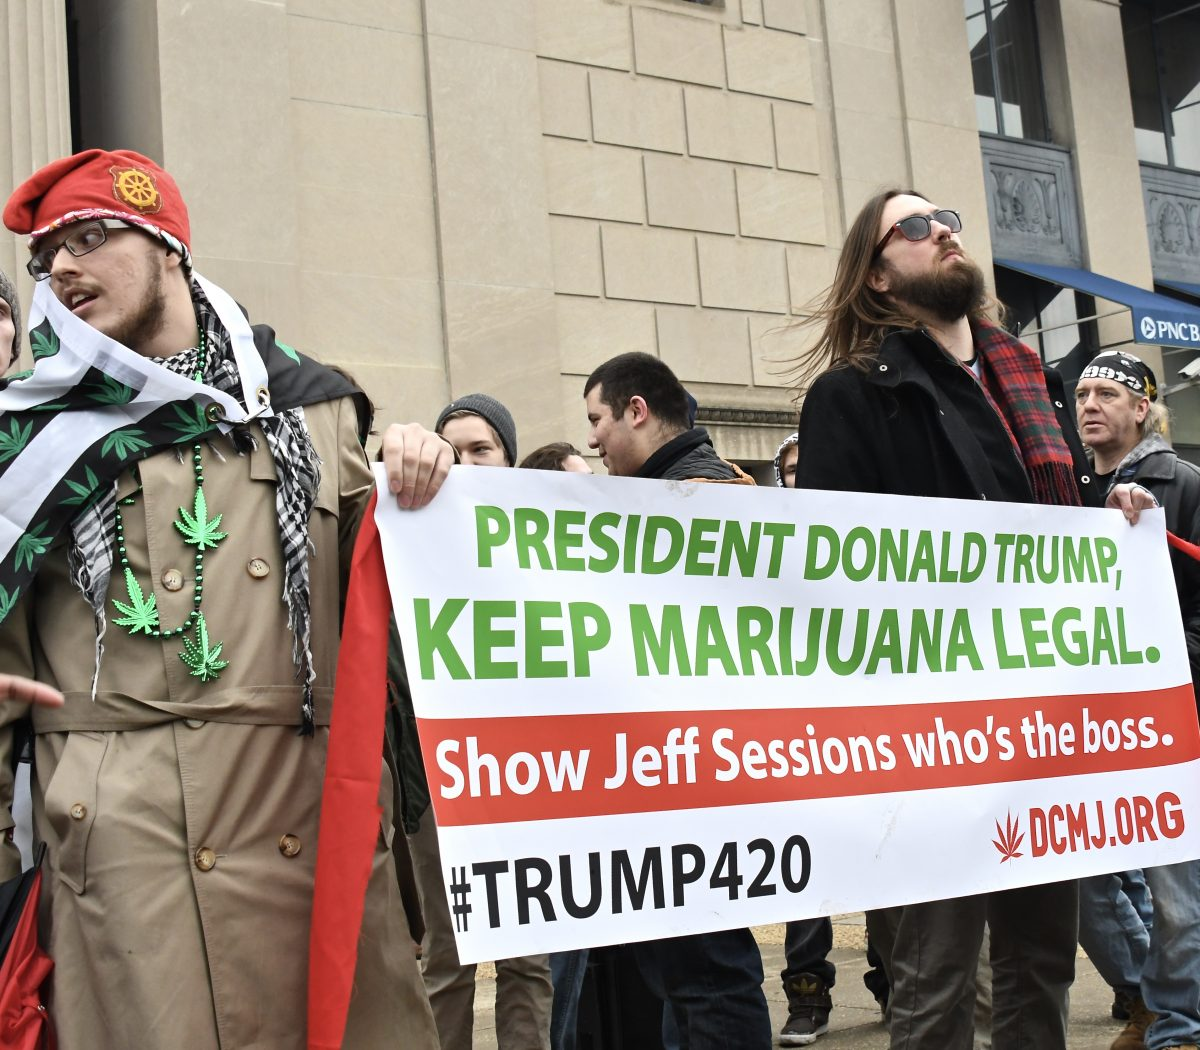 More than a thousand demonstrators rallied at 20th and Massachusetts Ave, NW in support of legalizing marijuana on the federal level and to protest President Trump's pick of attorney general Friday, Jan 20. /Photo by Travis Riddick